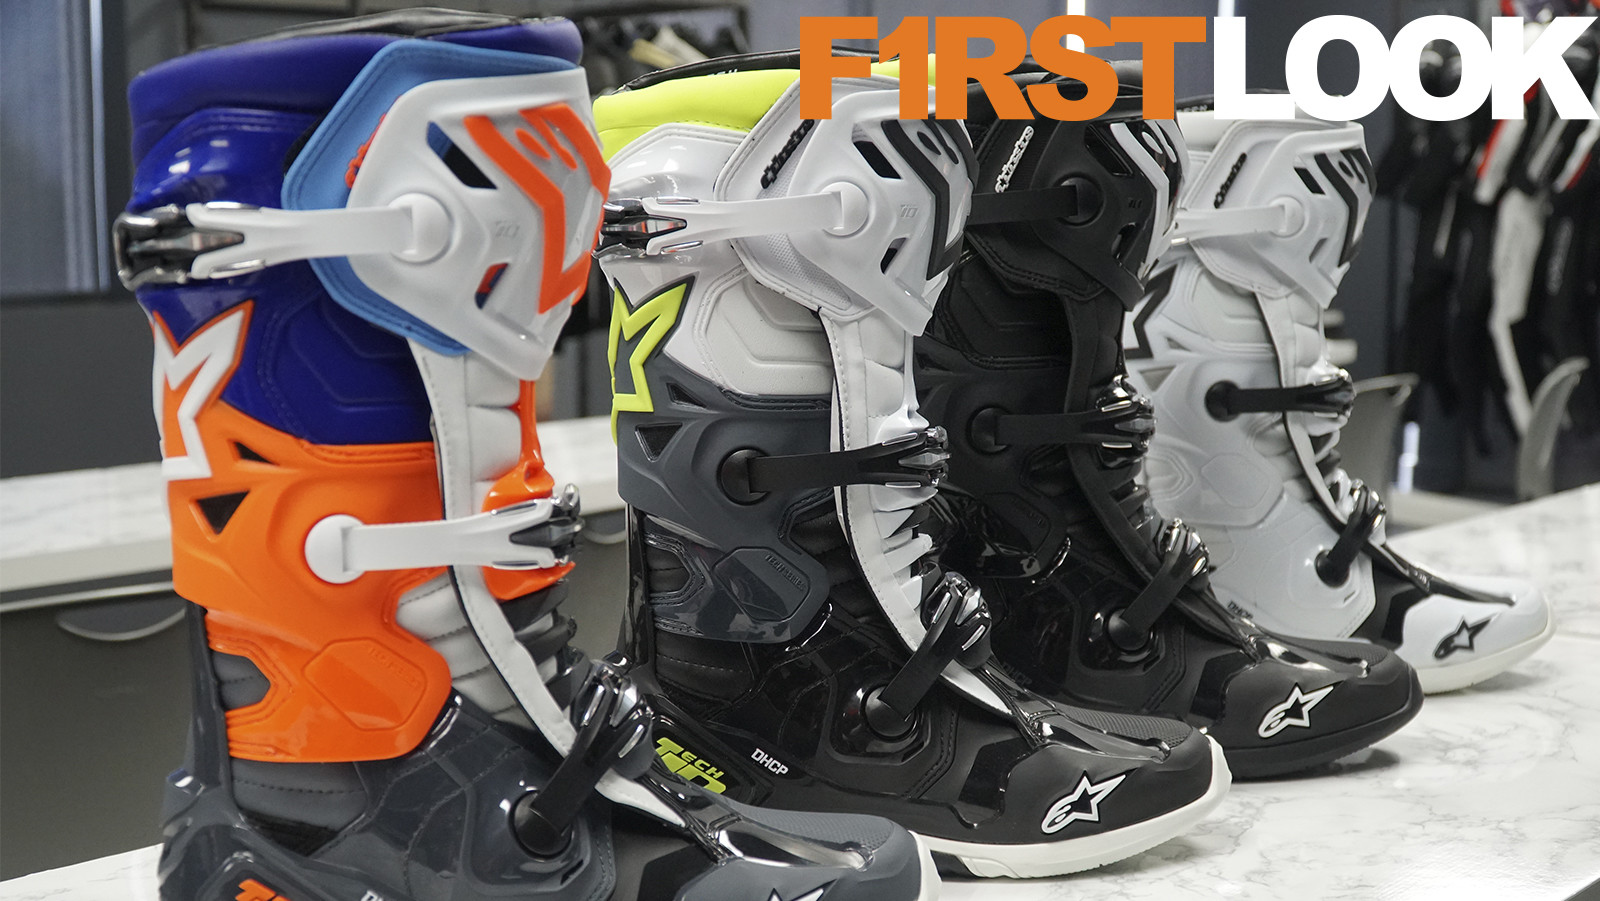 First Look: New Alpinestars Tech 10 and Off-Road Gear